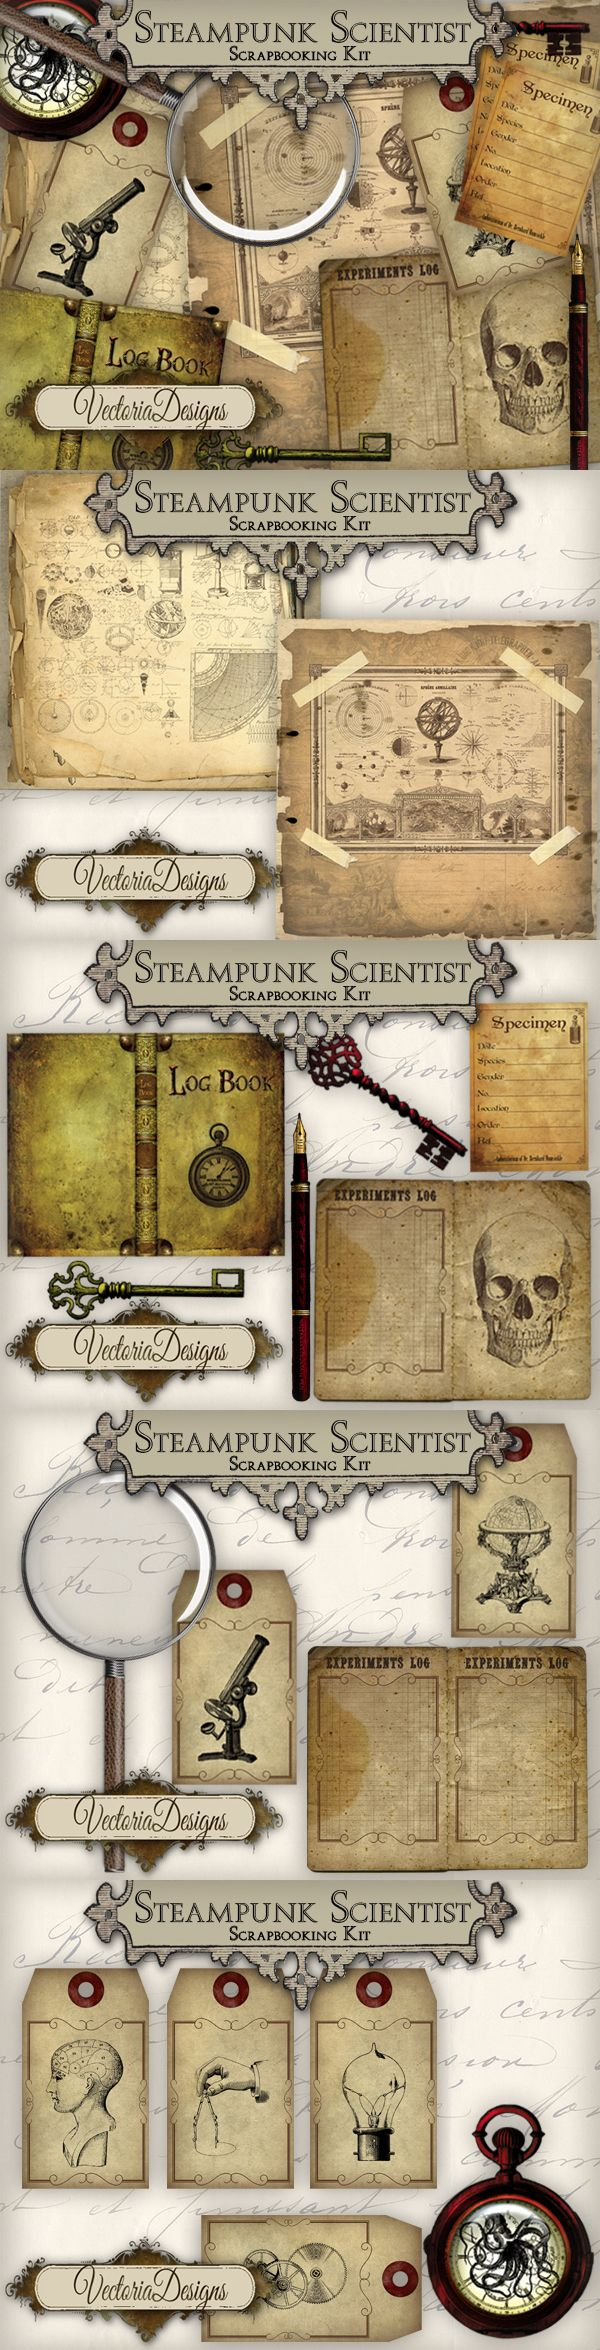 Steampunk Scientist Scrapbooking Kit by VectoriaDesigns